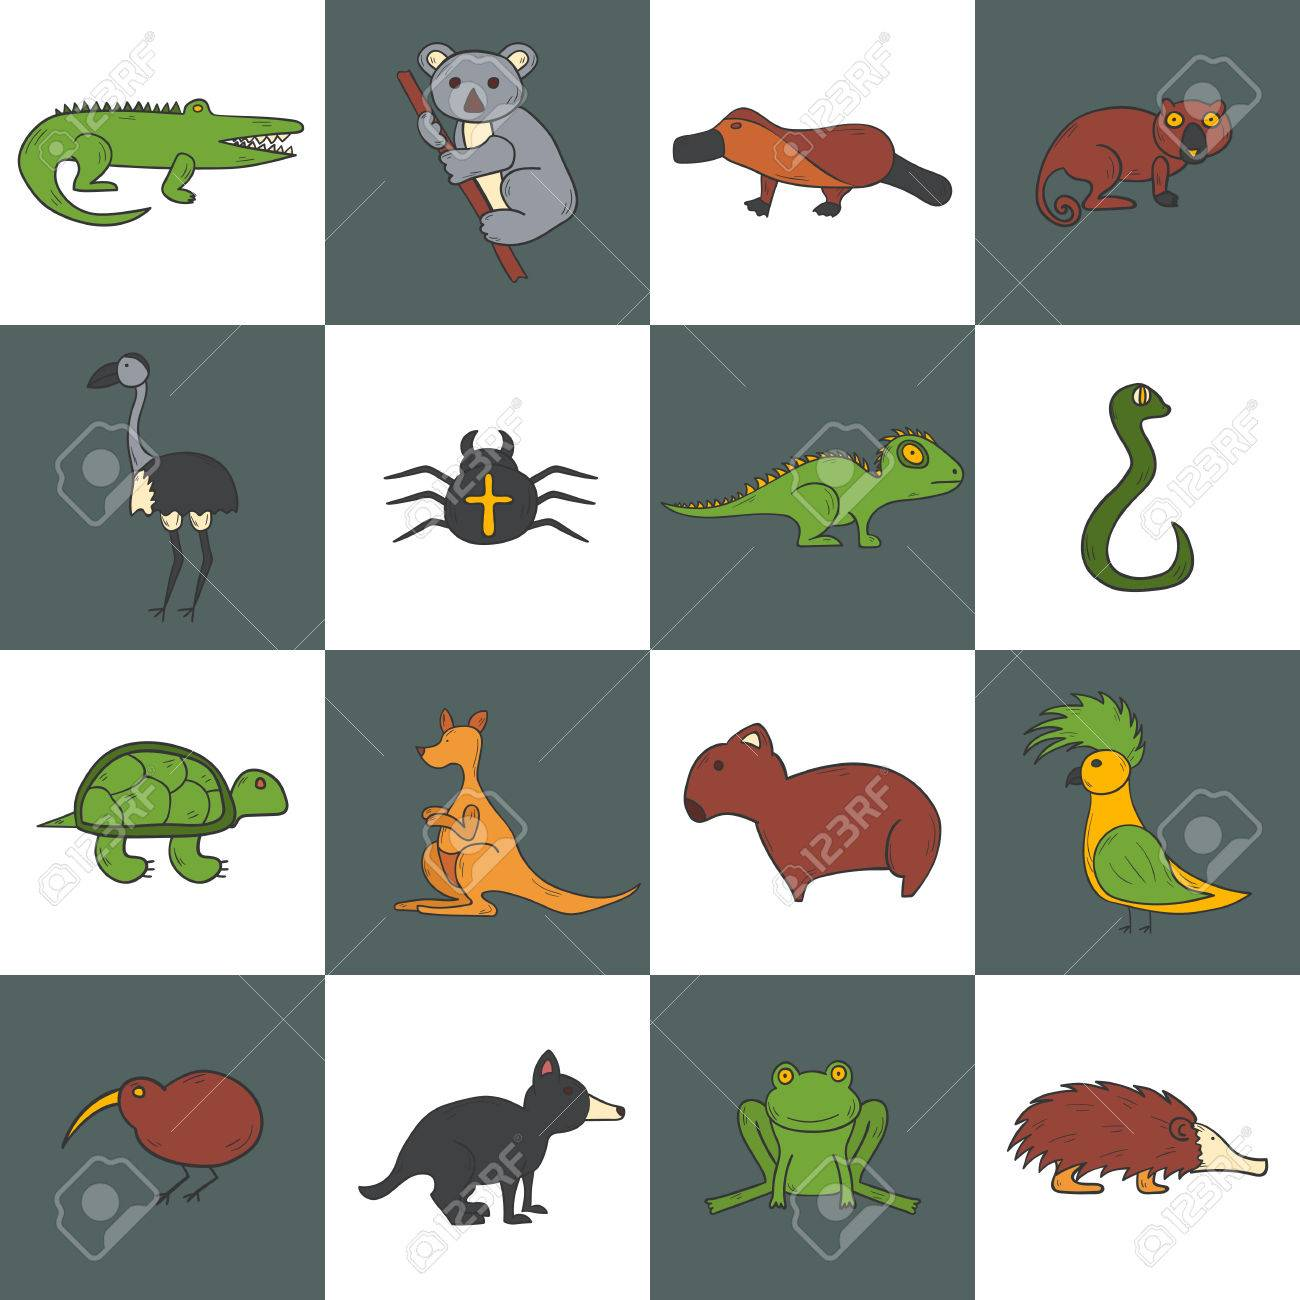 Australian Animals Drawings A Vector Cartoon Illustration With Hand Drawn Australia Animals